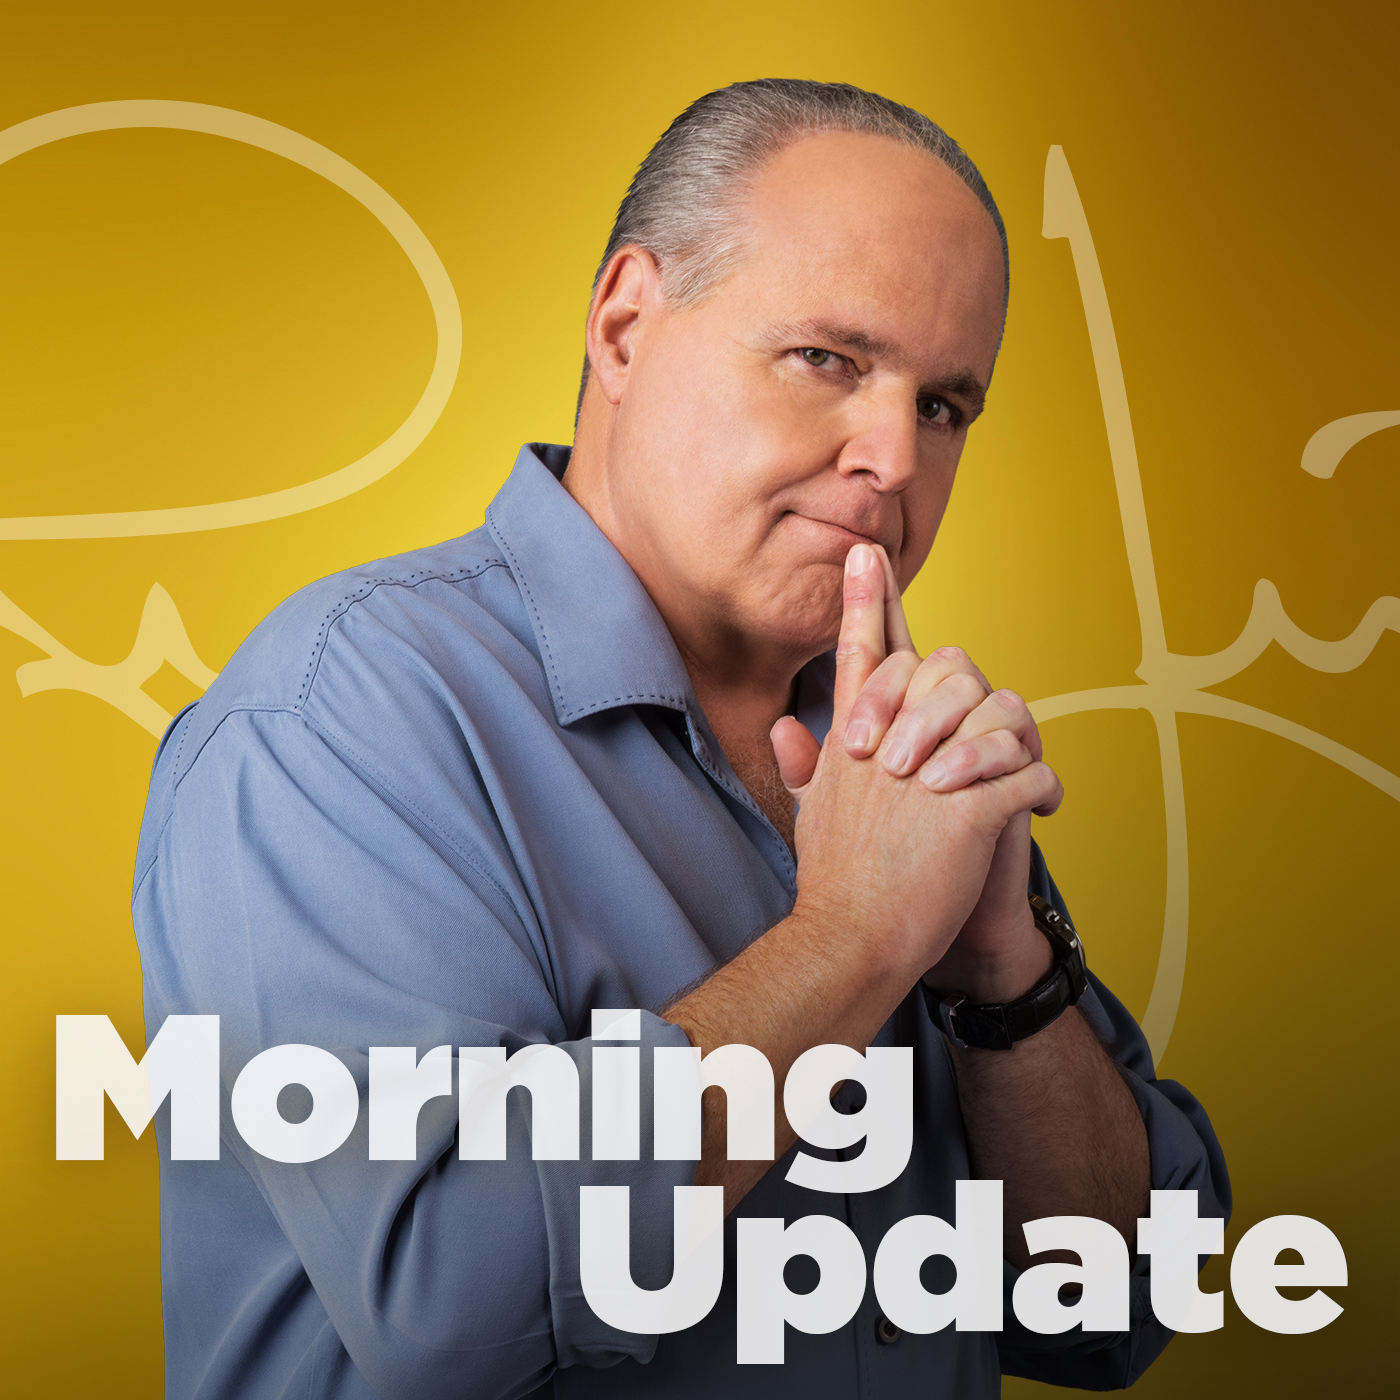 Rush Limbaugh Dec 02, 2019